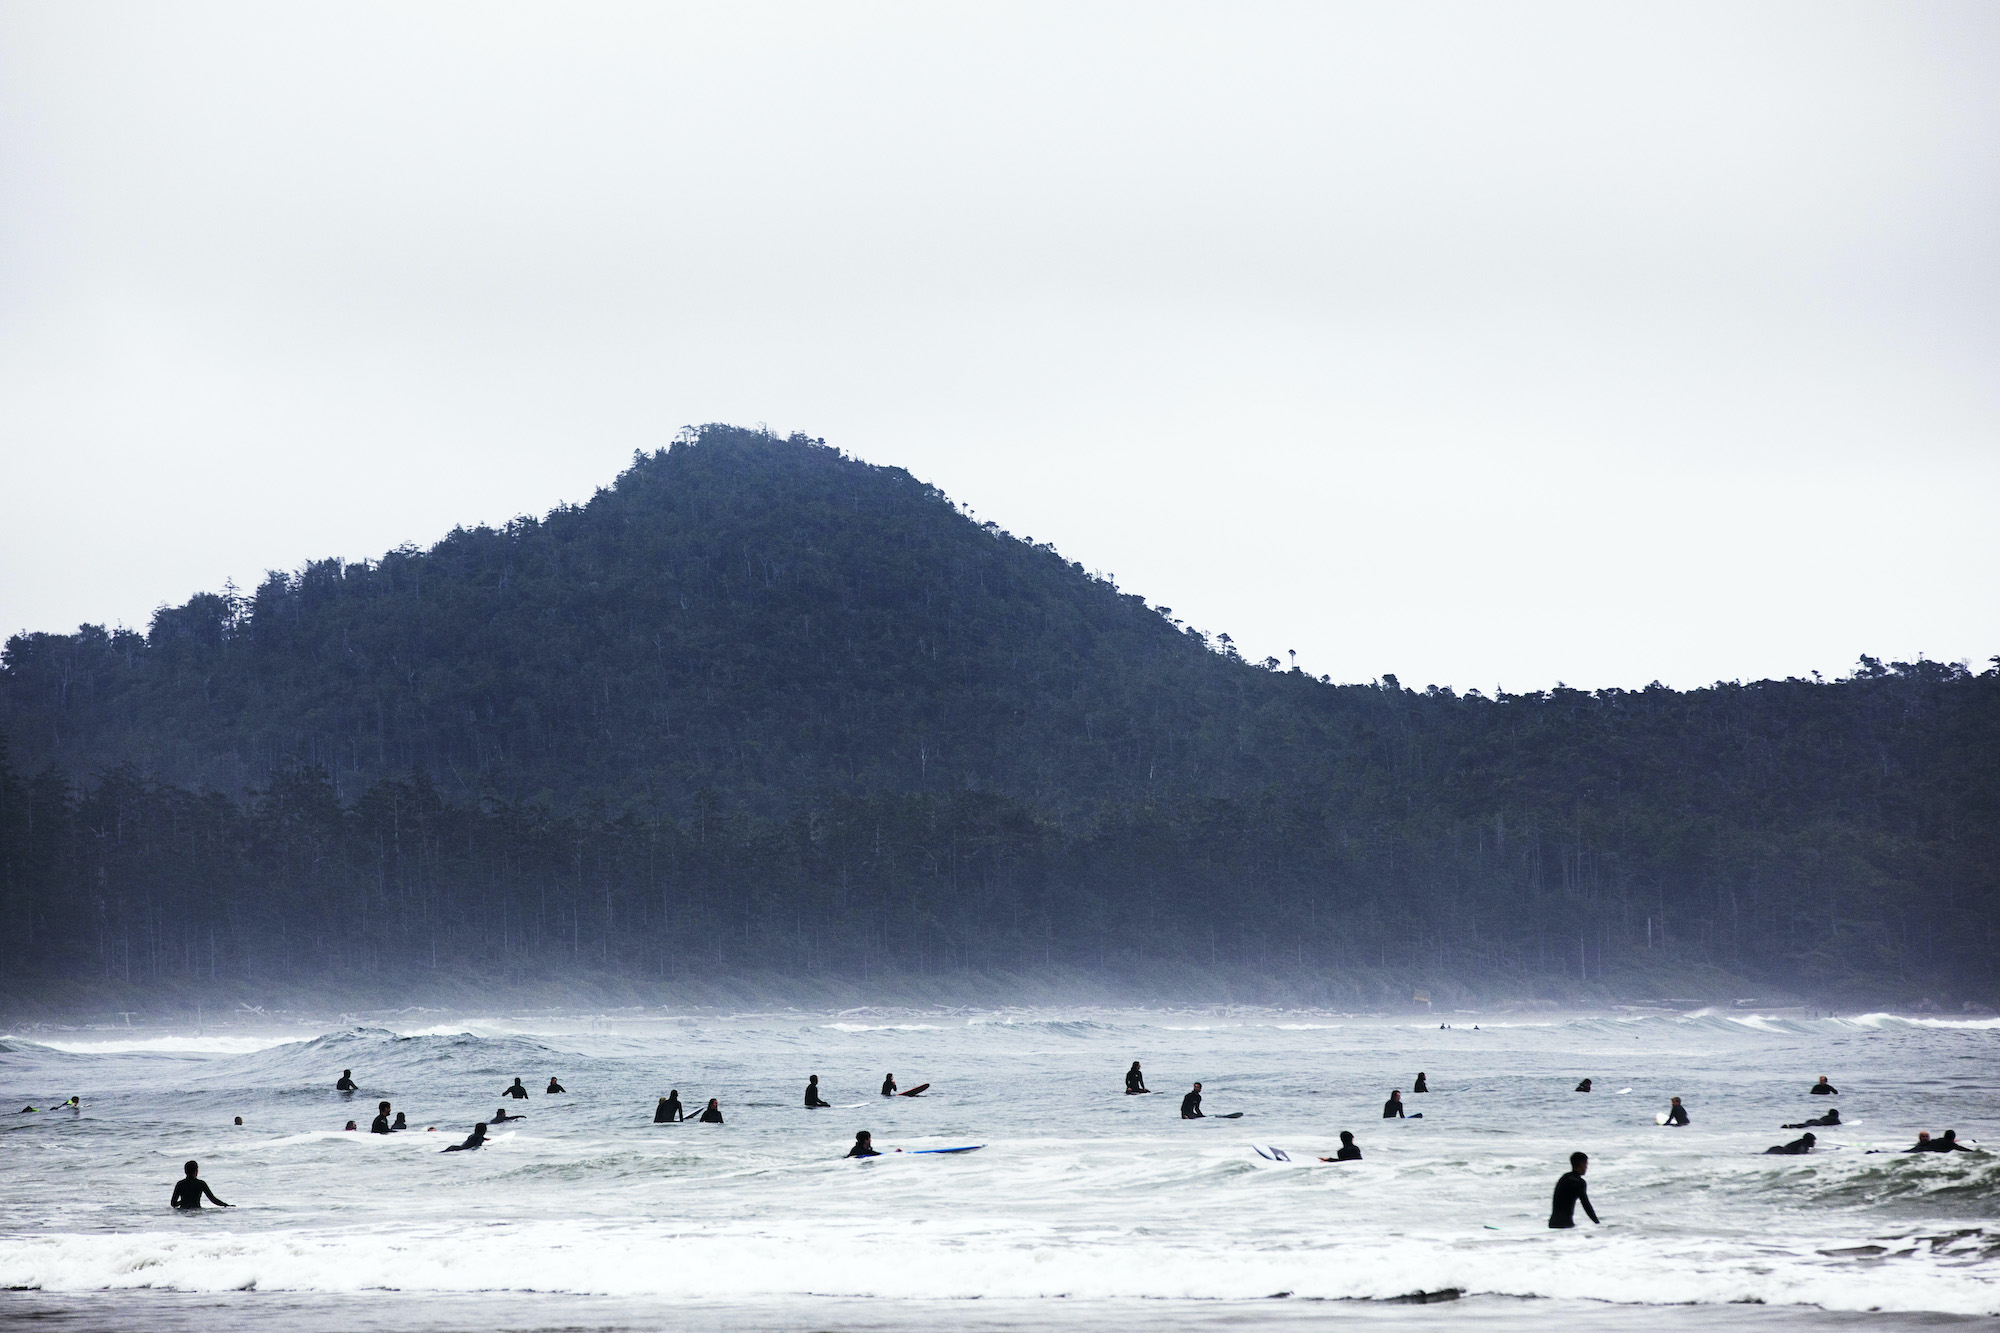 Visitors flock to Chesterman Beach in Tofino to surf